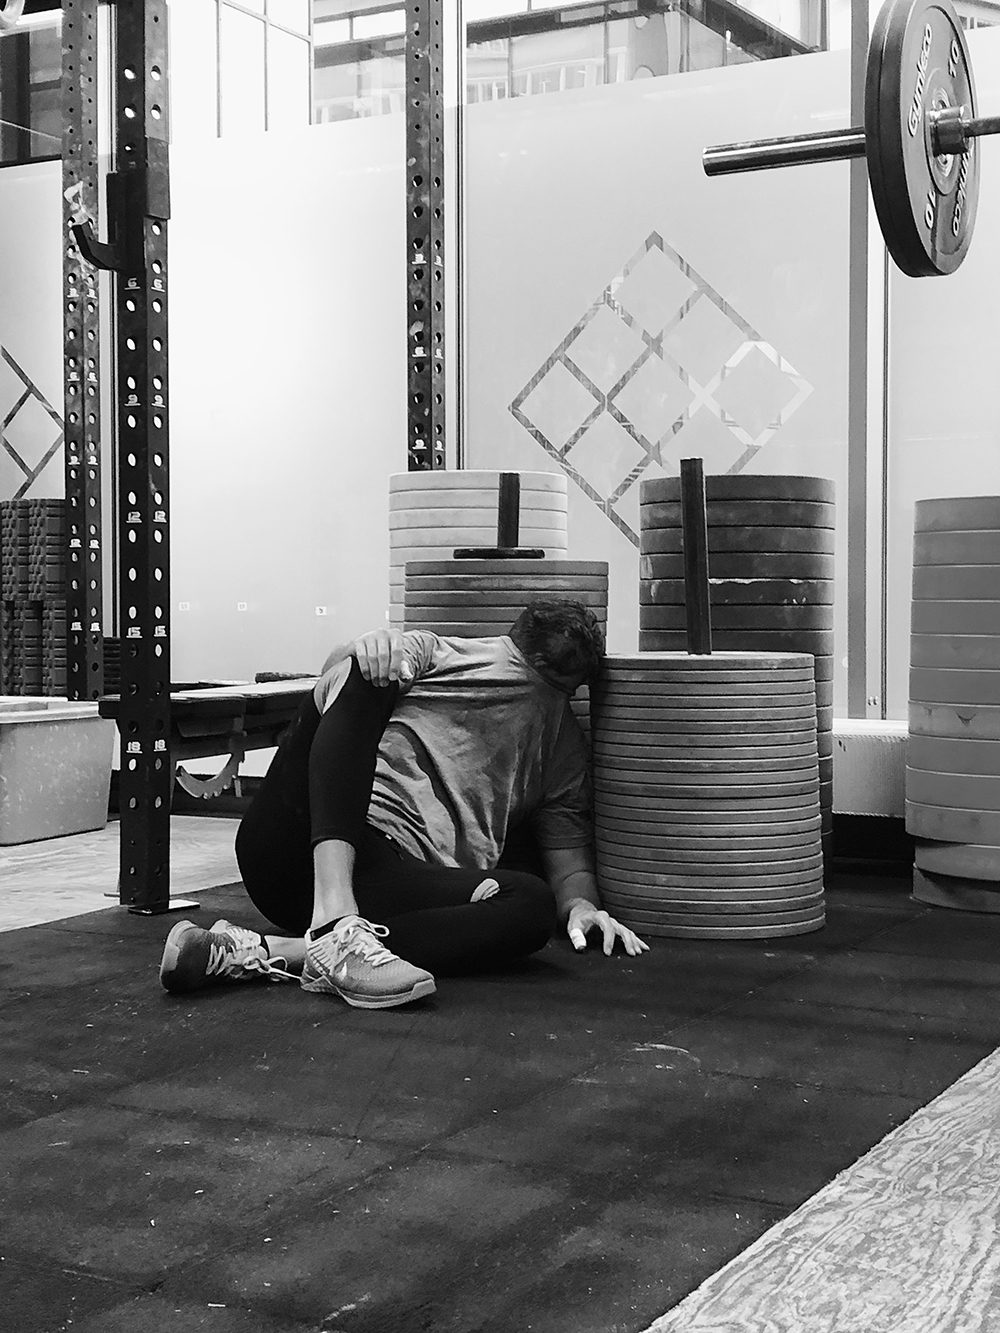 isabel-boltenstern-crossfit-open-igor